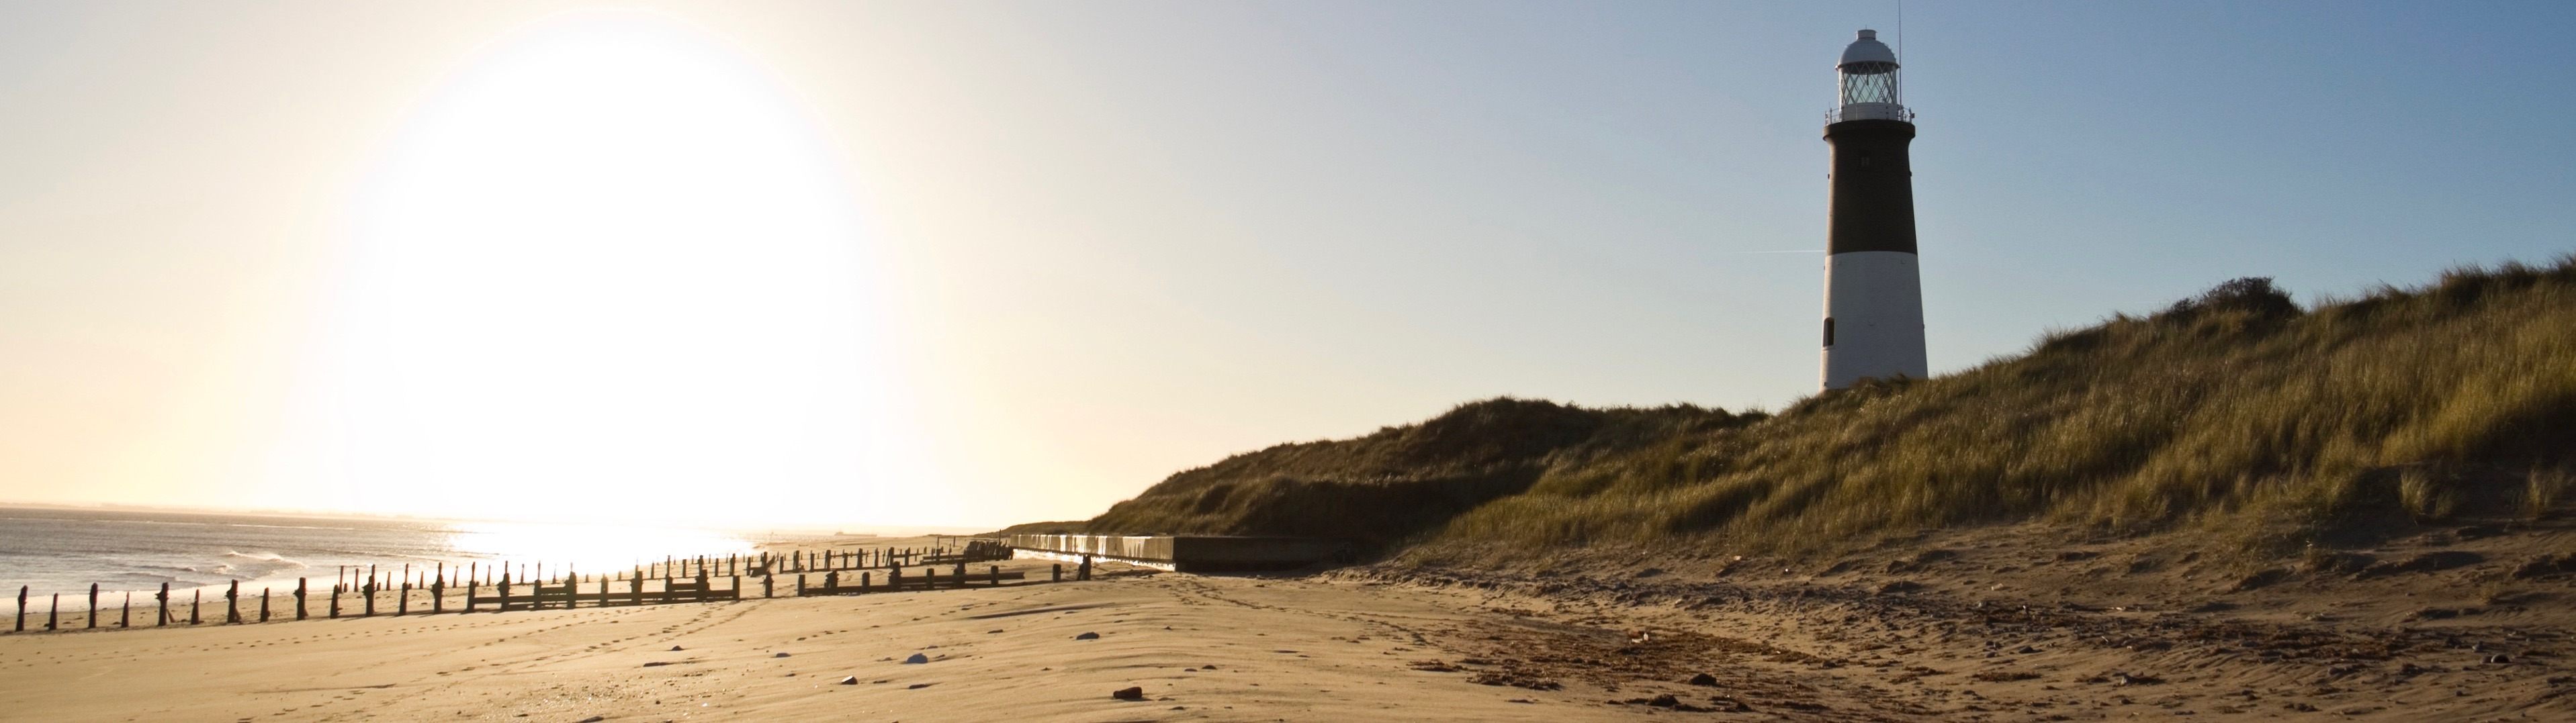 Marvelous Beach Holiday Cottages In Yorkshire Coastal Self Catering Download Free Architecture Designs Embacsunscenecom